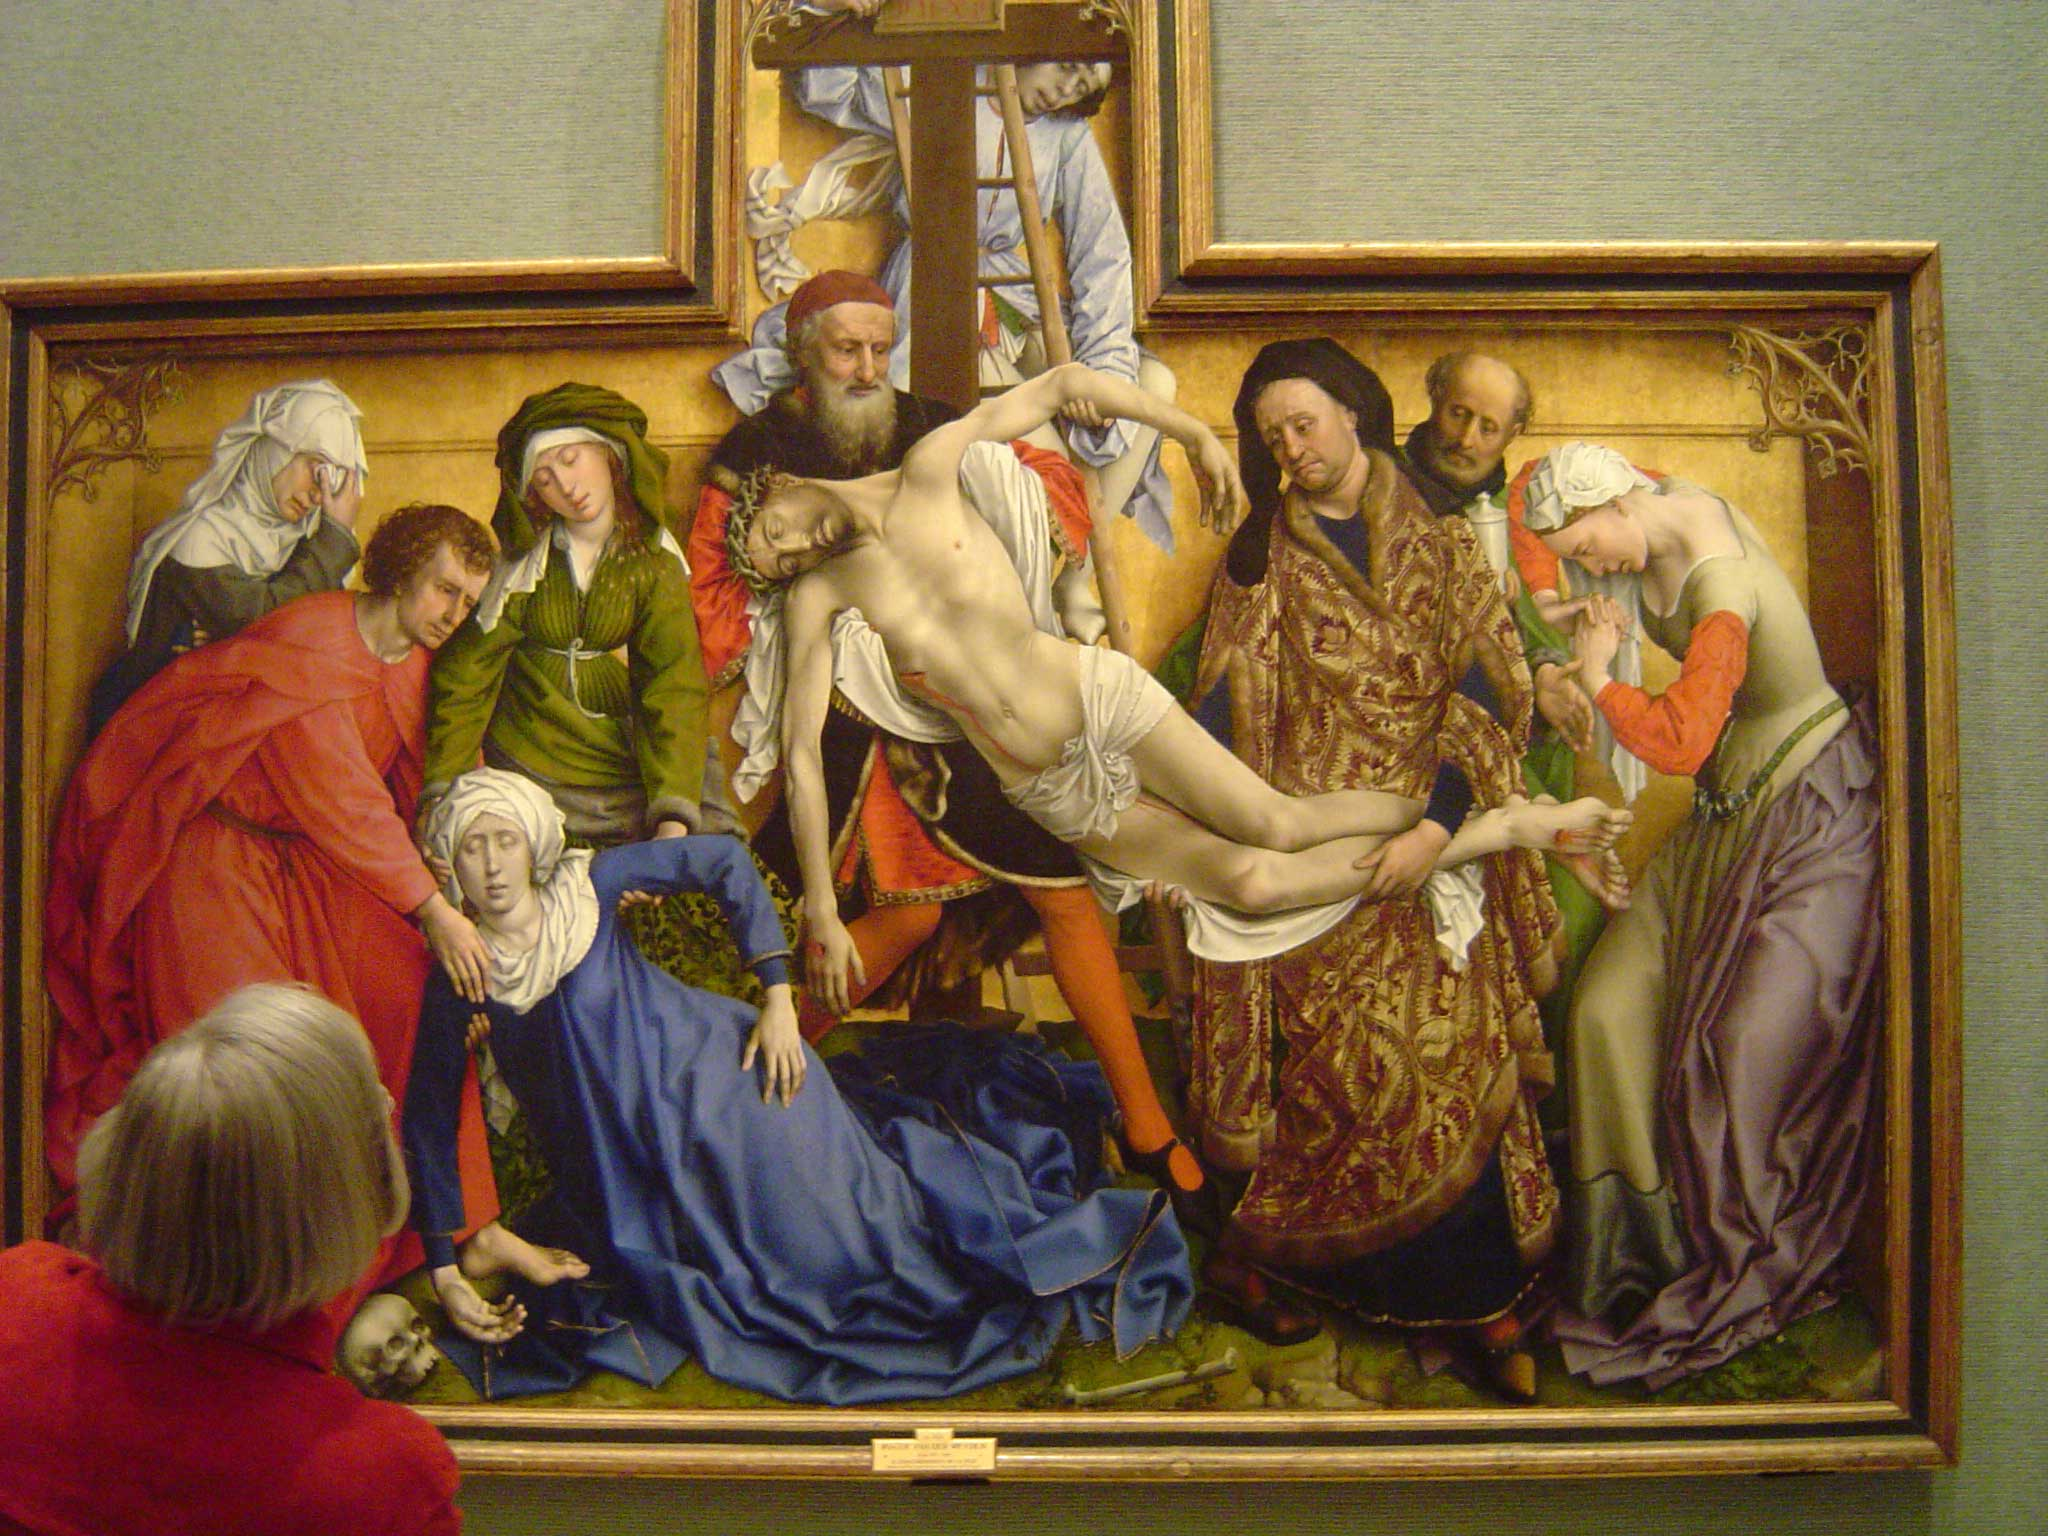 Touristic Attraction, Madrid, Spain, Prado Museum work of art